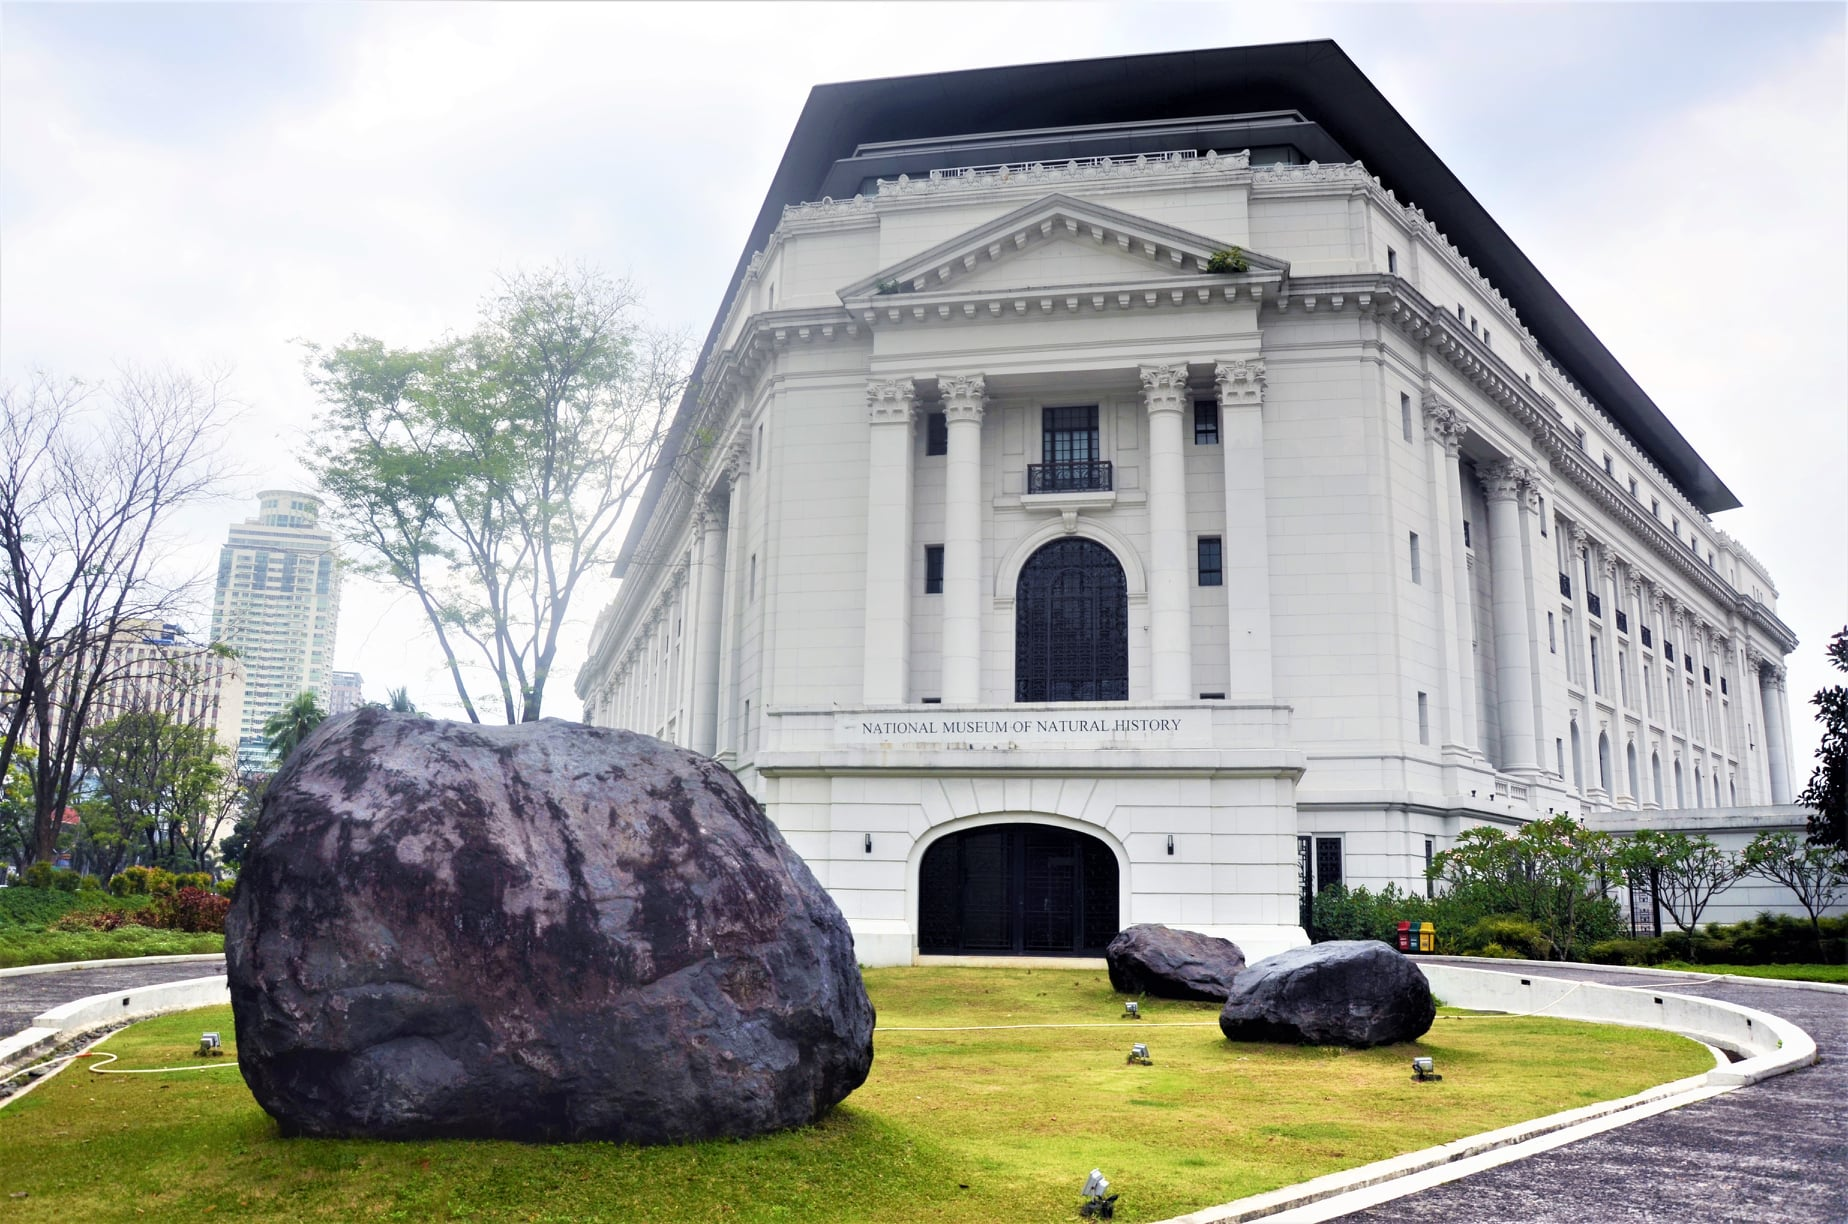 boulders are at the entrance of National Museum of Natural History Philippines